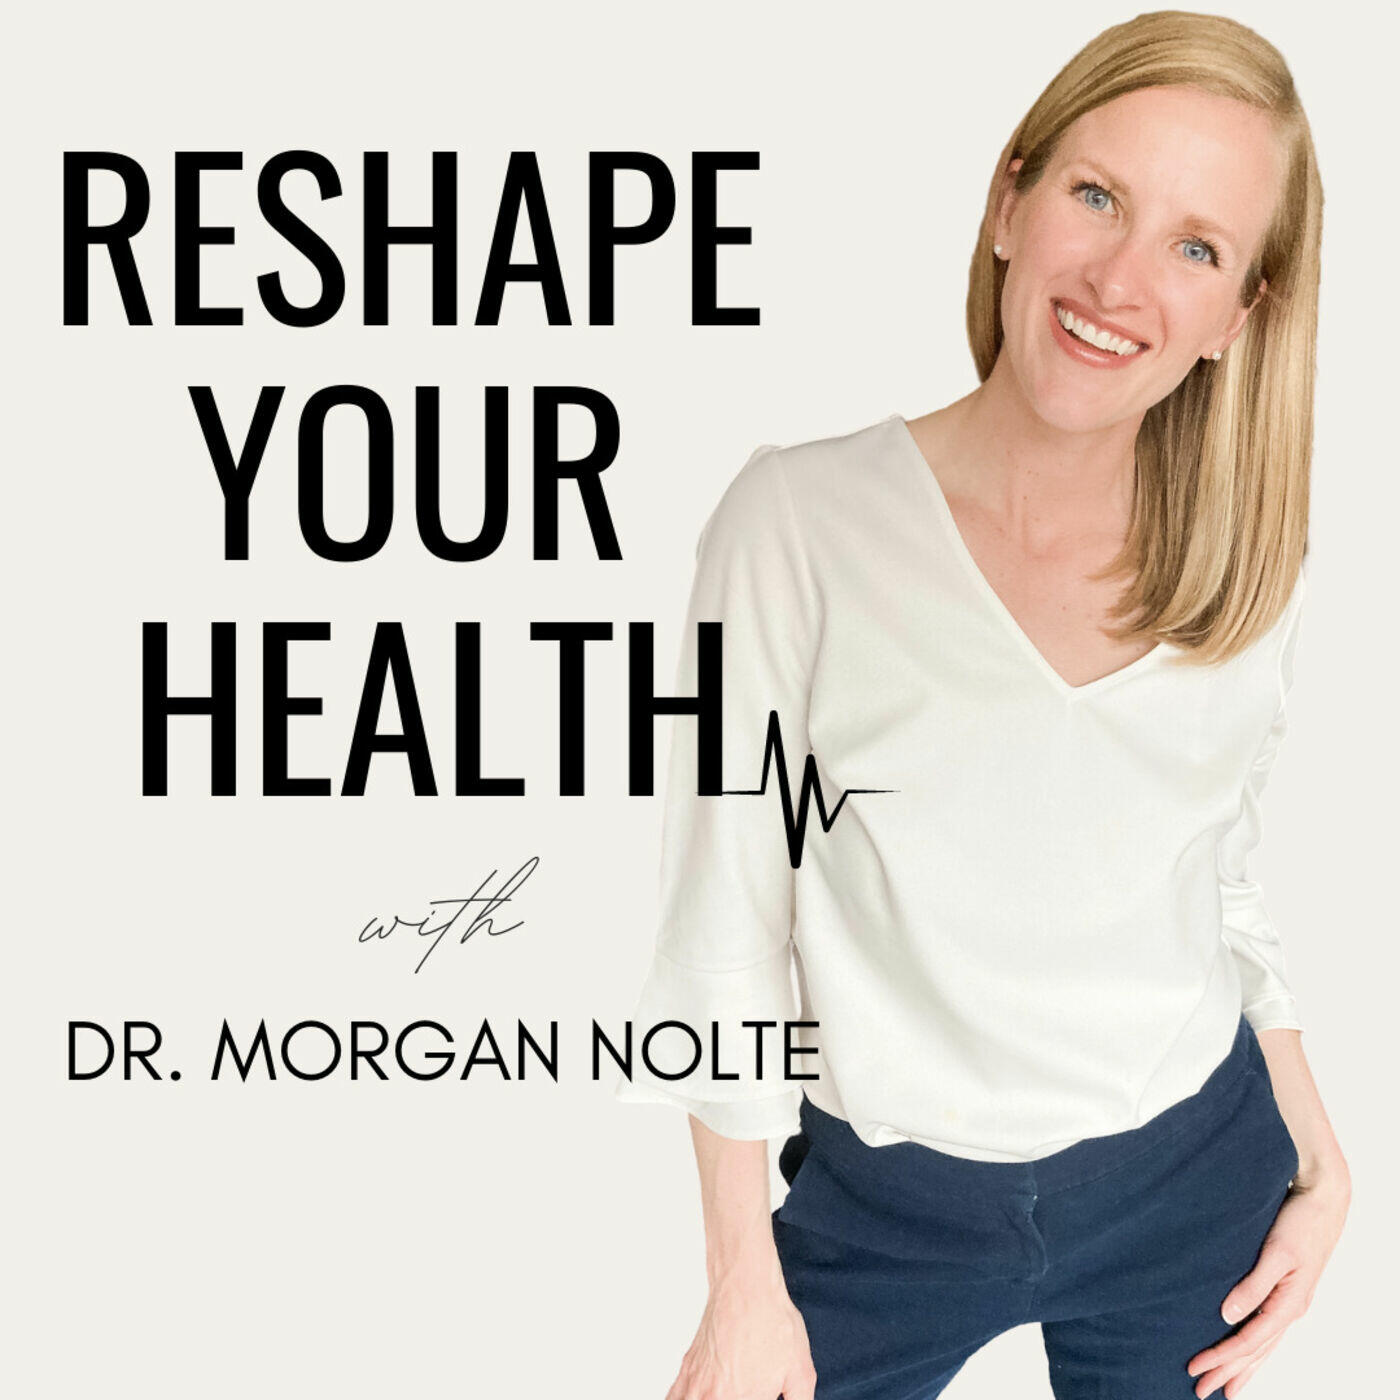 Reshape Your Health with Dr. Morgan Nolte